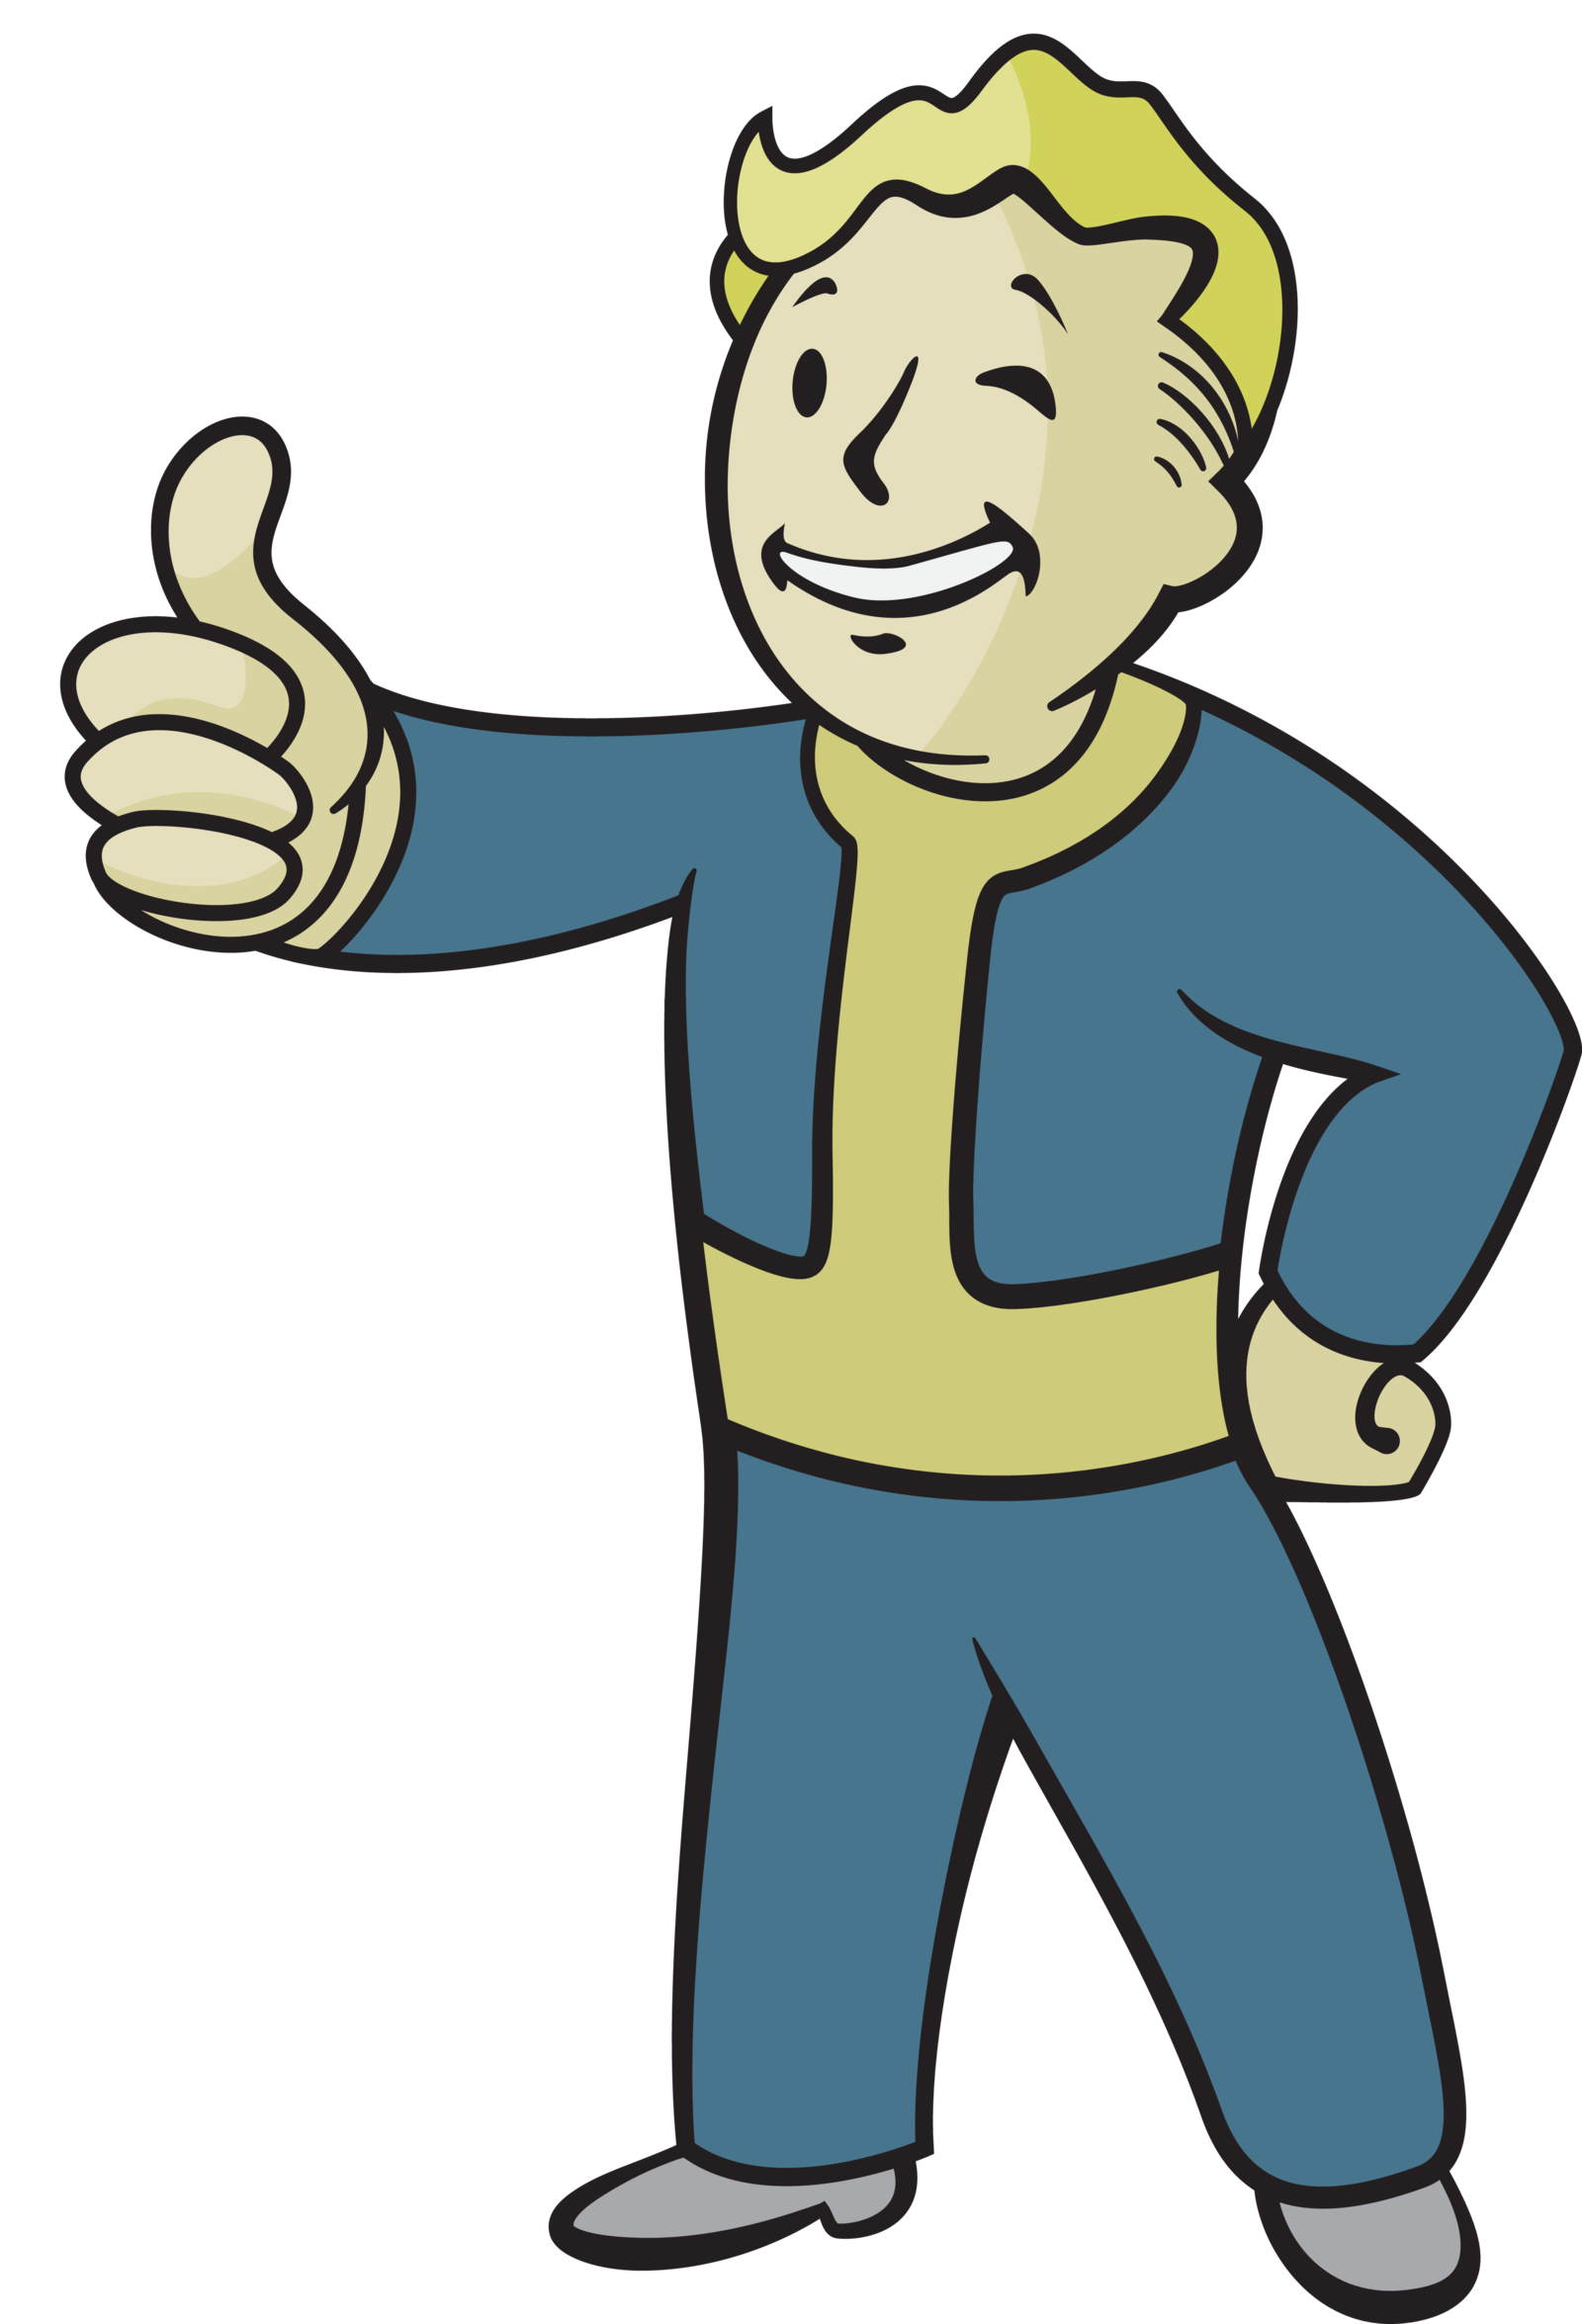 Fallout 4 Character Design Tips : Vault boy vector by goblinengineer viantart on